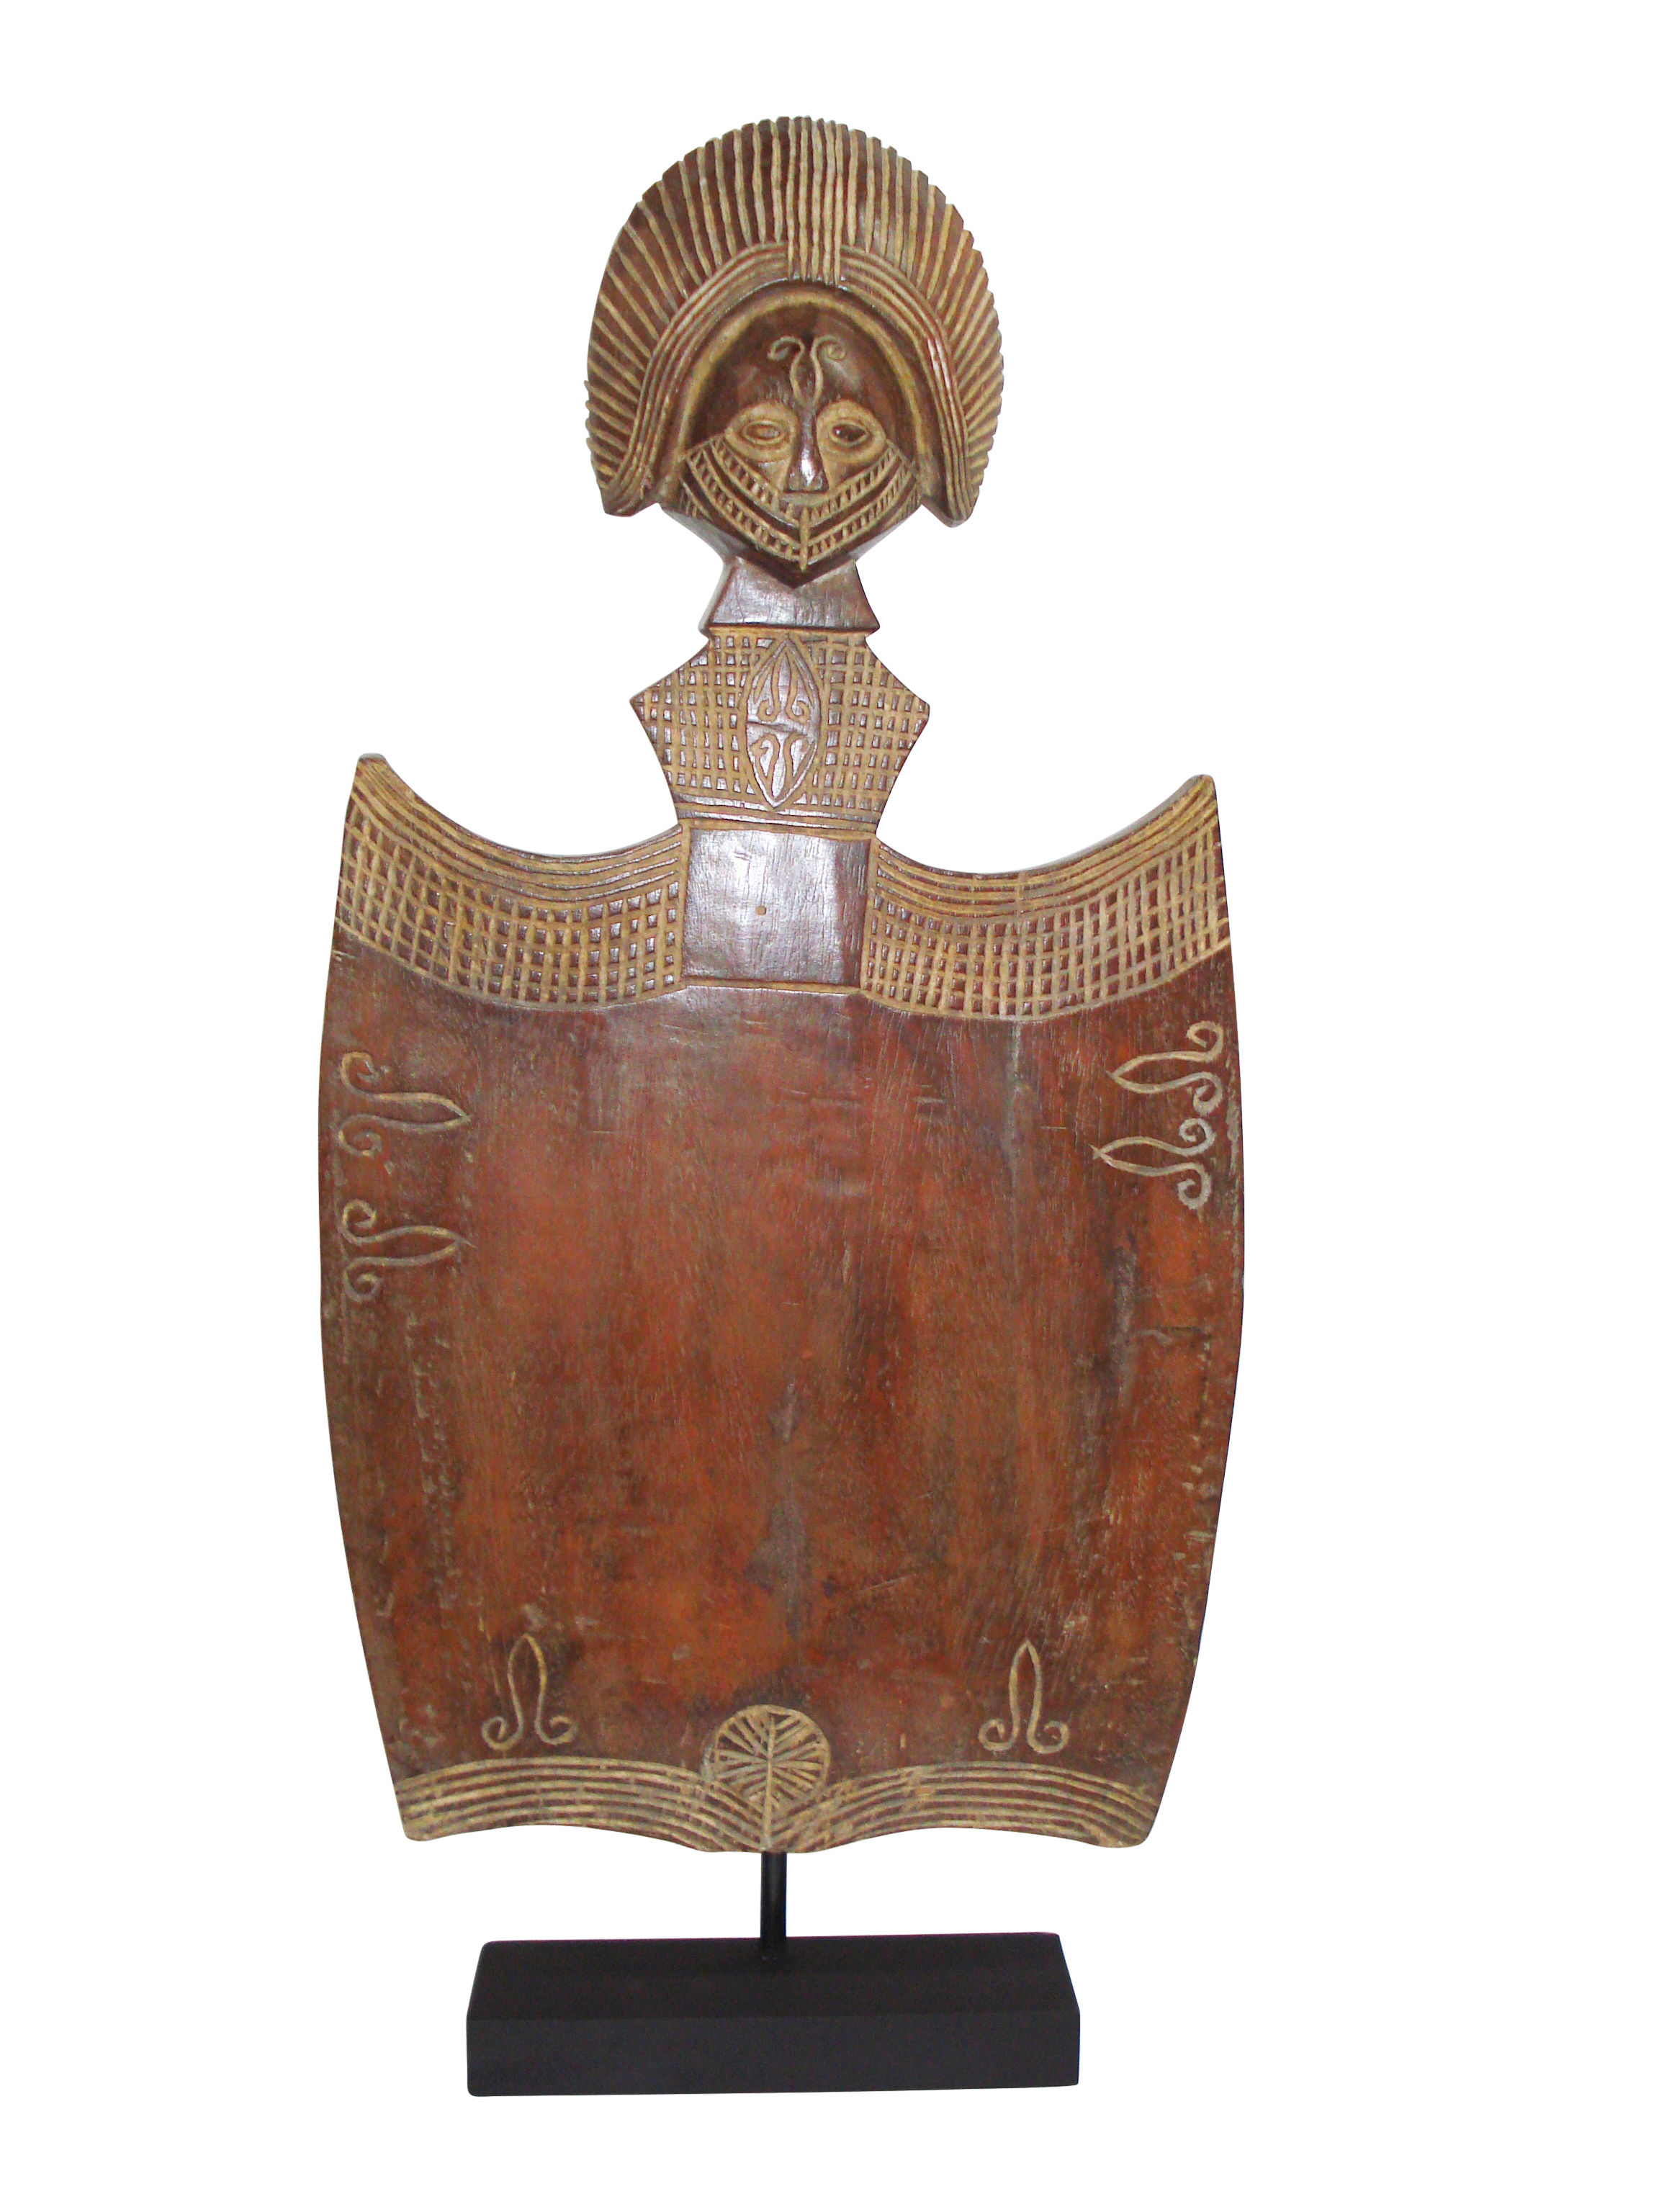 SALE!!! Chokwe Ceremonial Art Piece